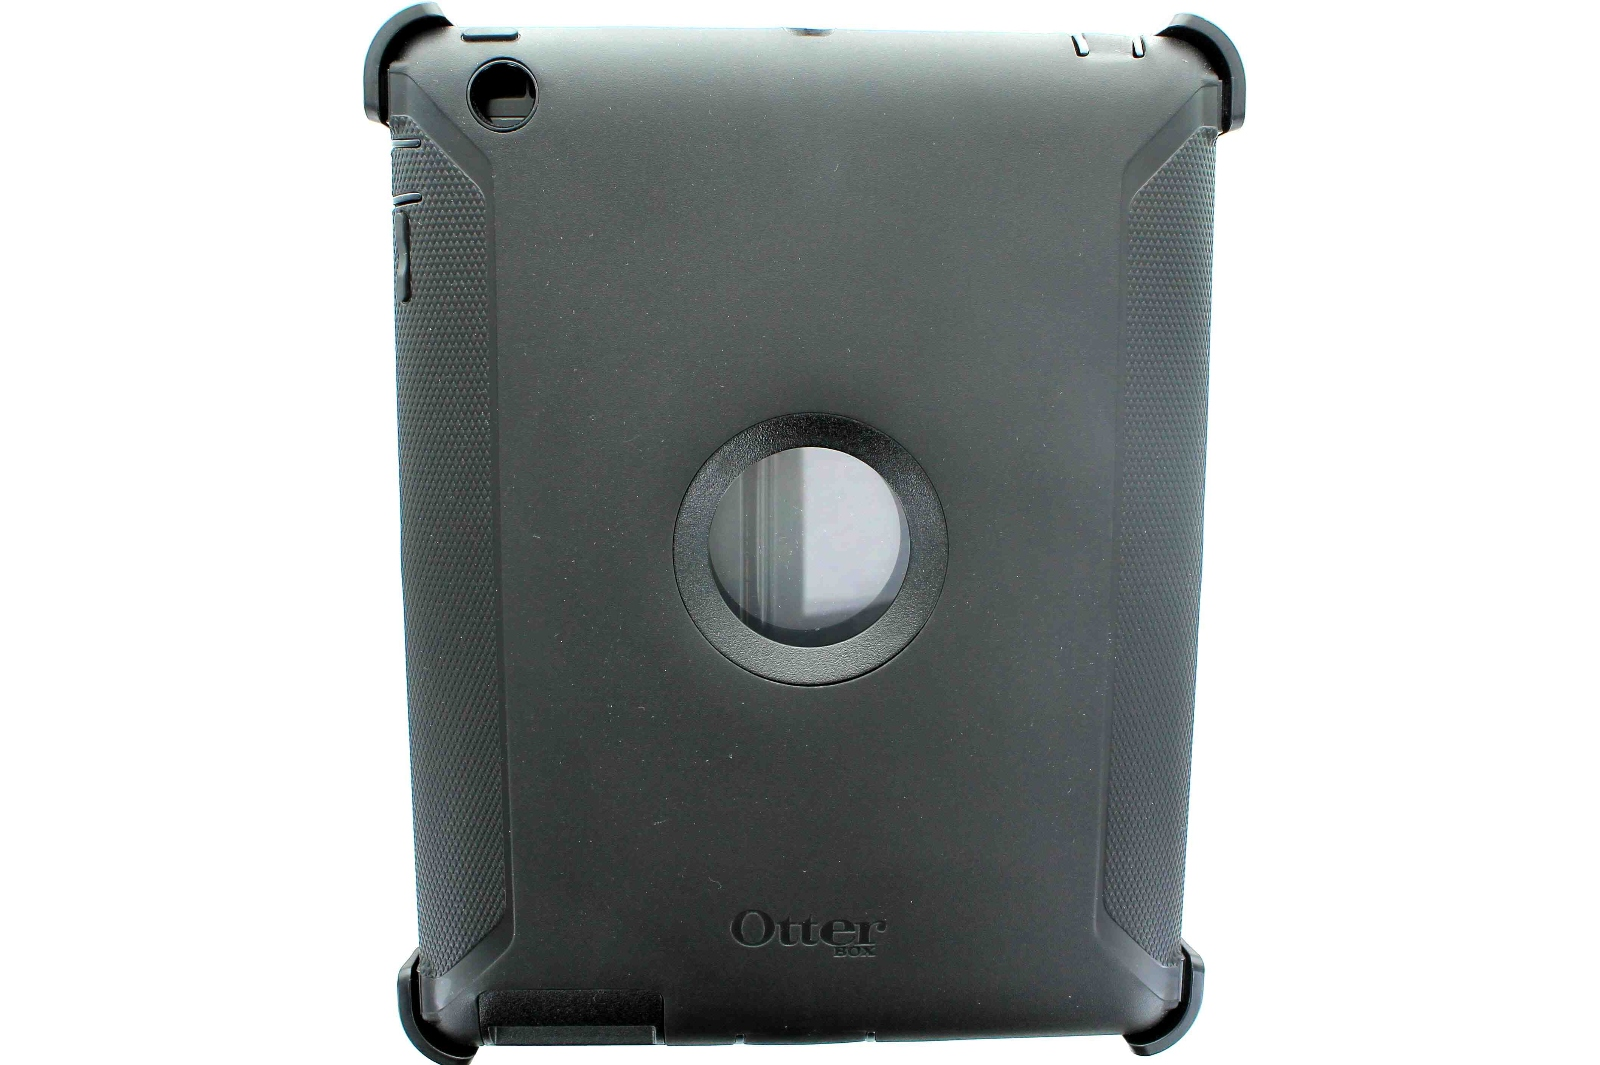 Oem Otterbox Defender Case And Stand 77 18640 For Apple Ipad 2 3 4 Black Series New